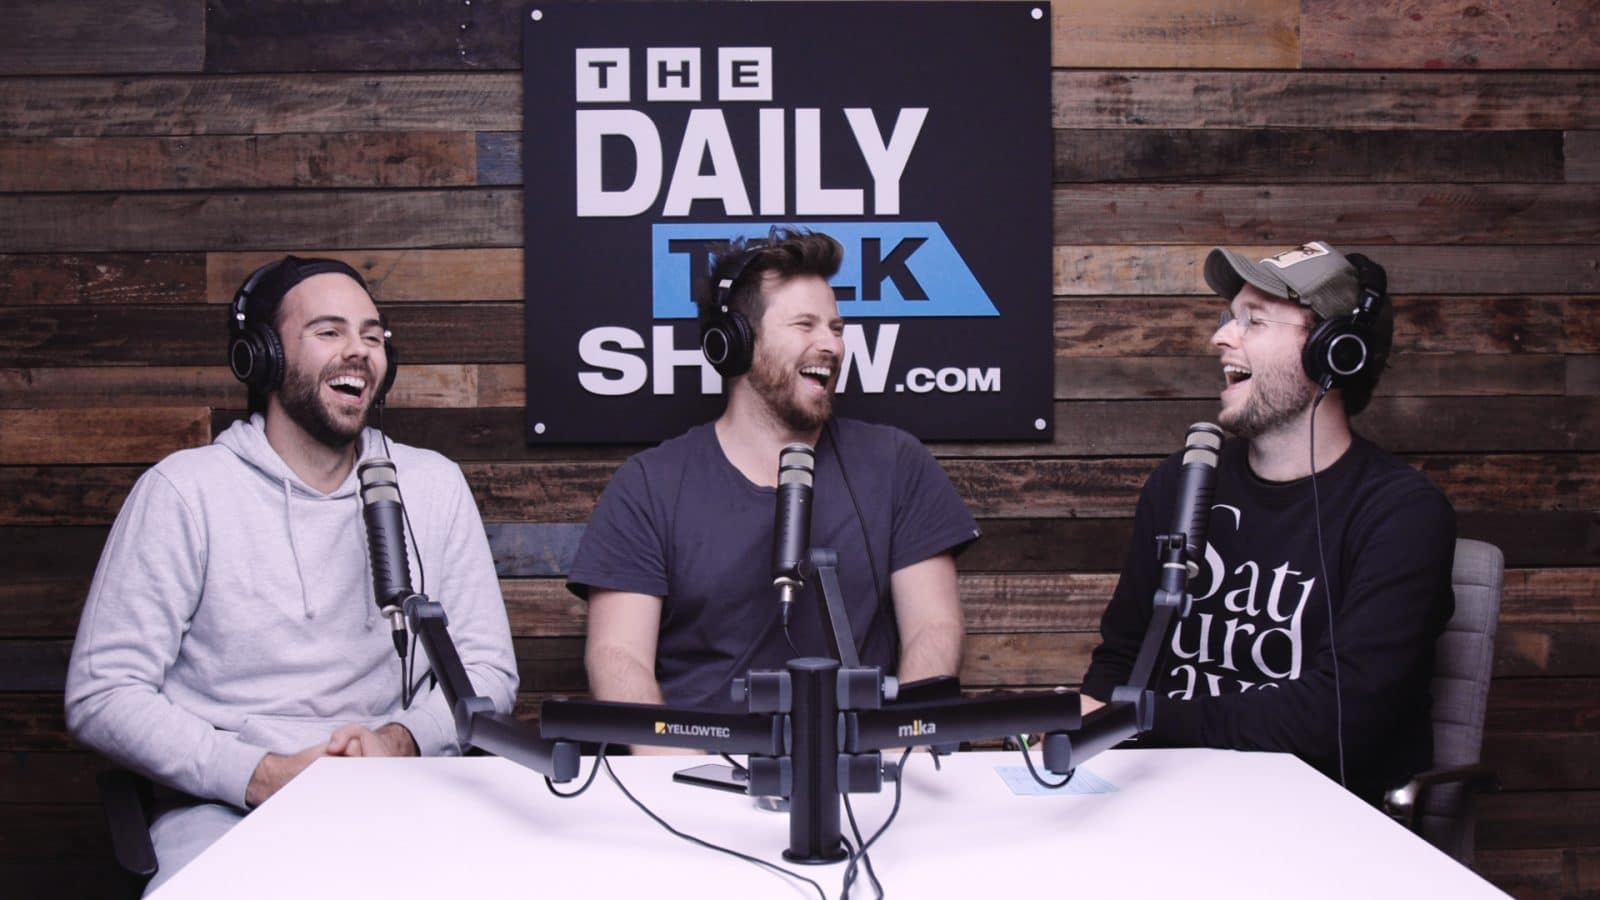 The-Daily-Talk-Show-402